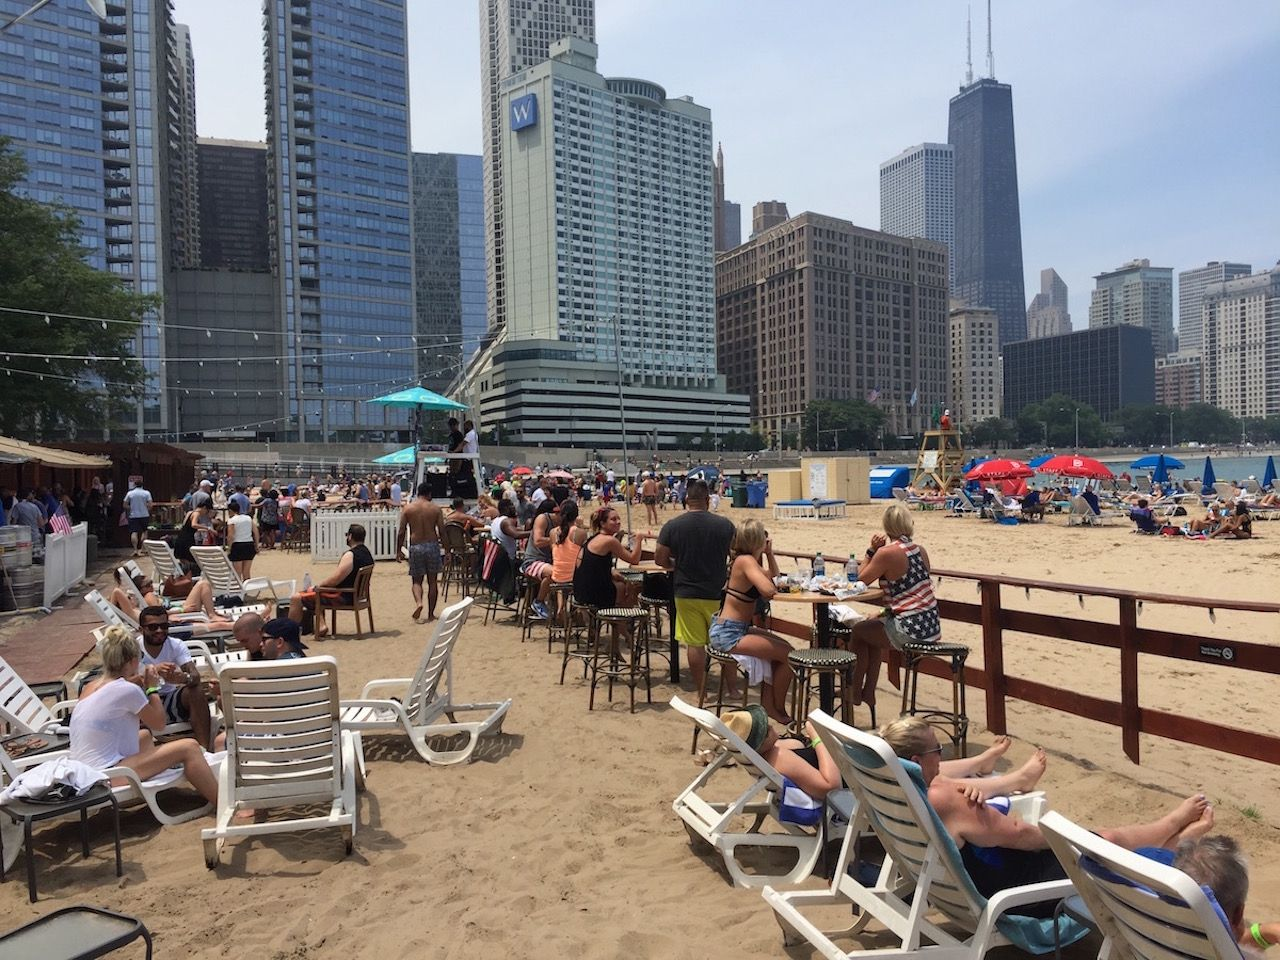 Caffe Olivia chairs in the sand opposite Chicago skyline